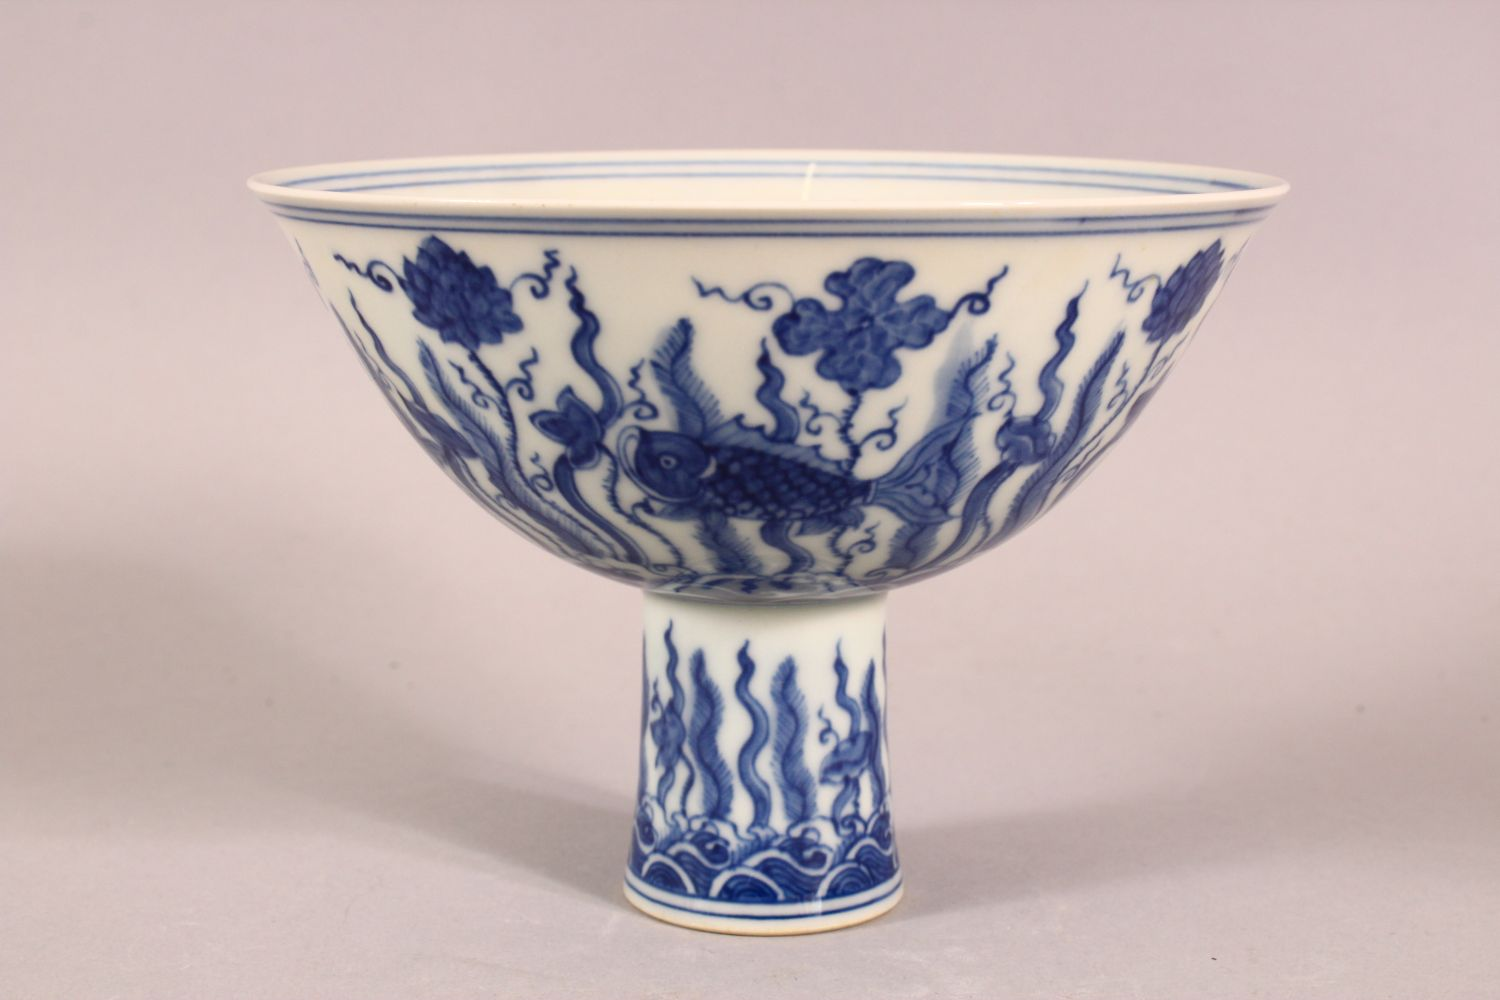 A CHINESE BLUE AND WHITE PORCELAIN STEM CUP, the bowl painted with fish amongst aquatic flora - Image 2 of 6